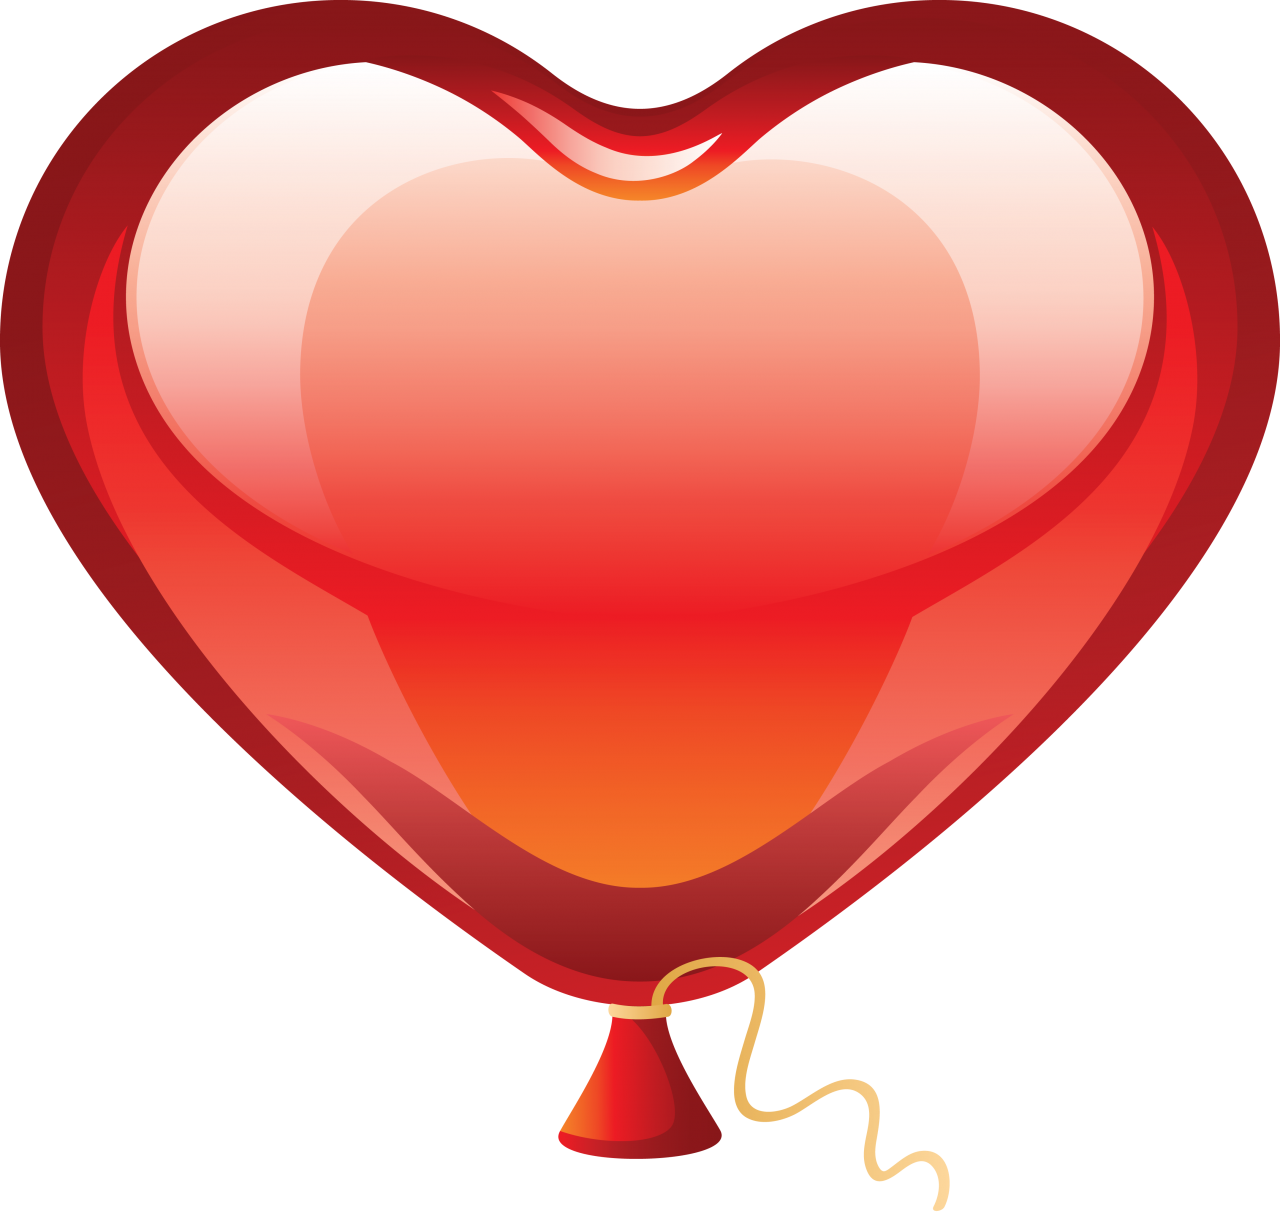 Valentine Heart Balloon PNG Image